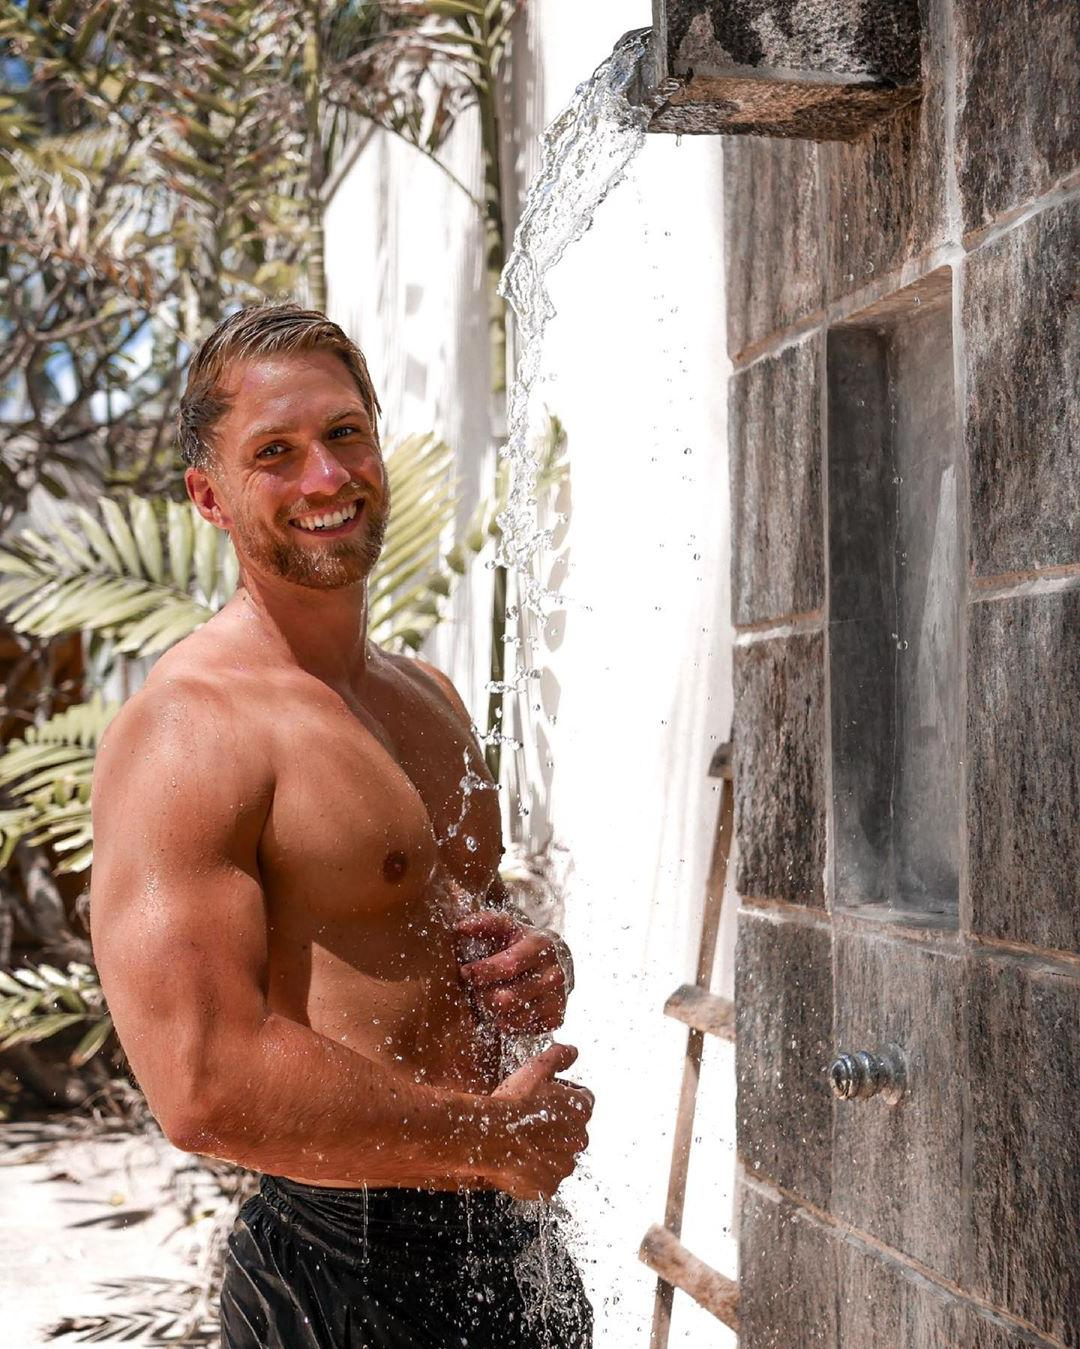 cute-beefy-fit-shirtless-bearded-daddy-smiling-showering-outdoors-hot-beta-men